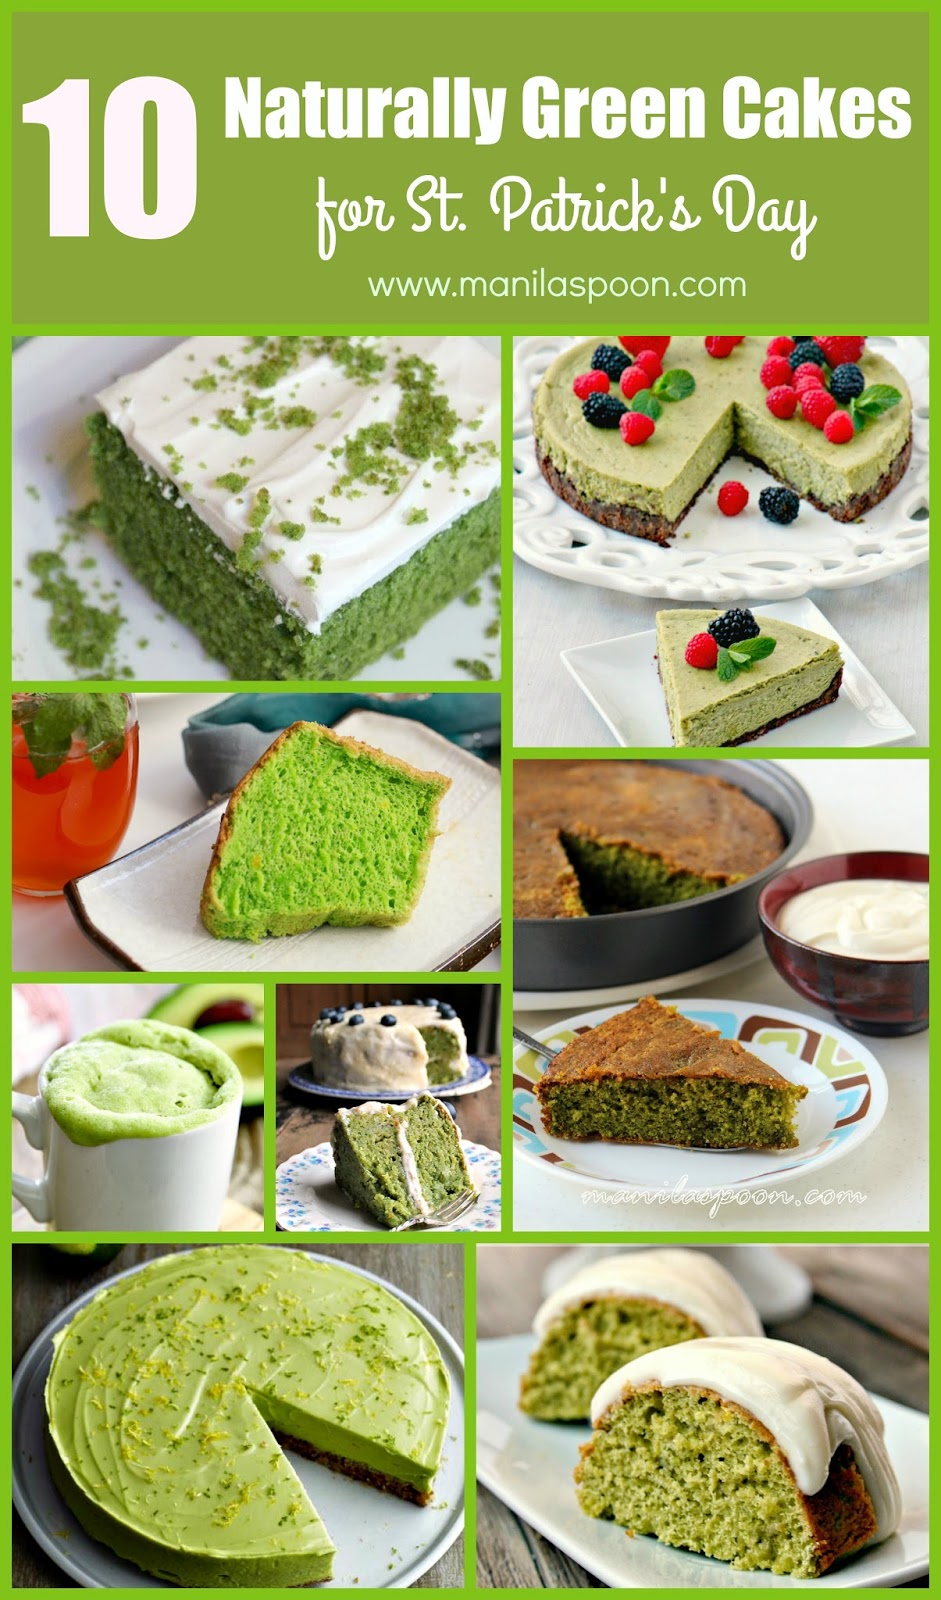 10 Naturally Green Cakes for St. Patrick's Day